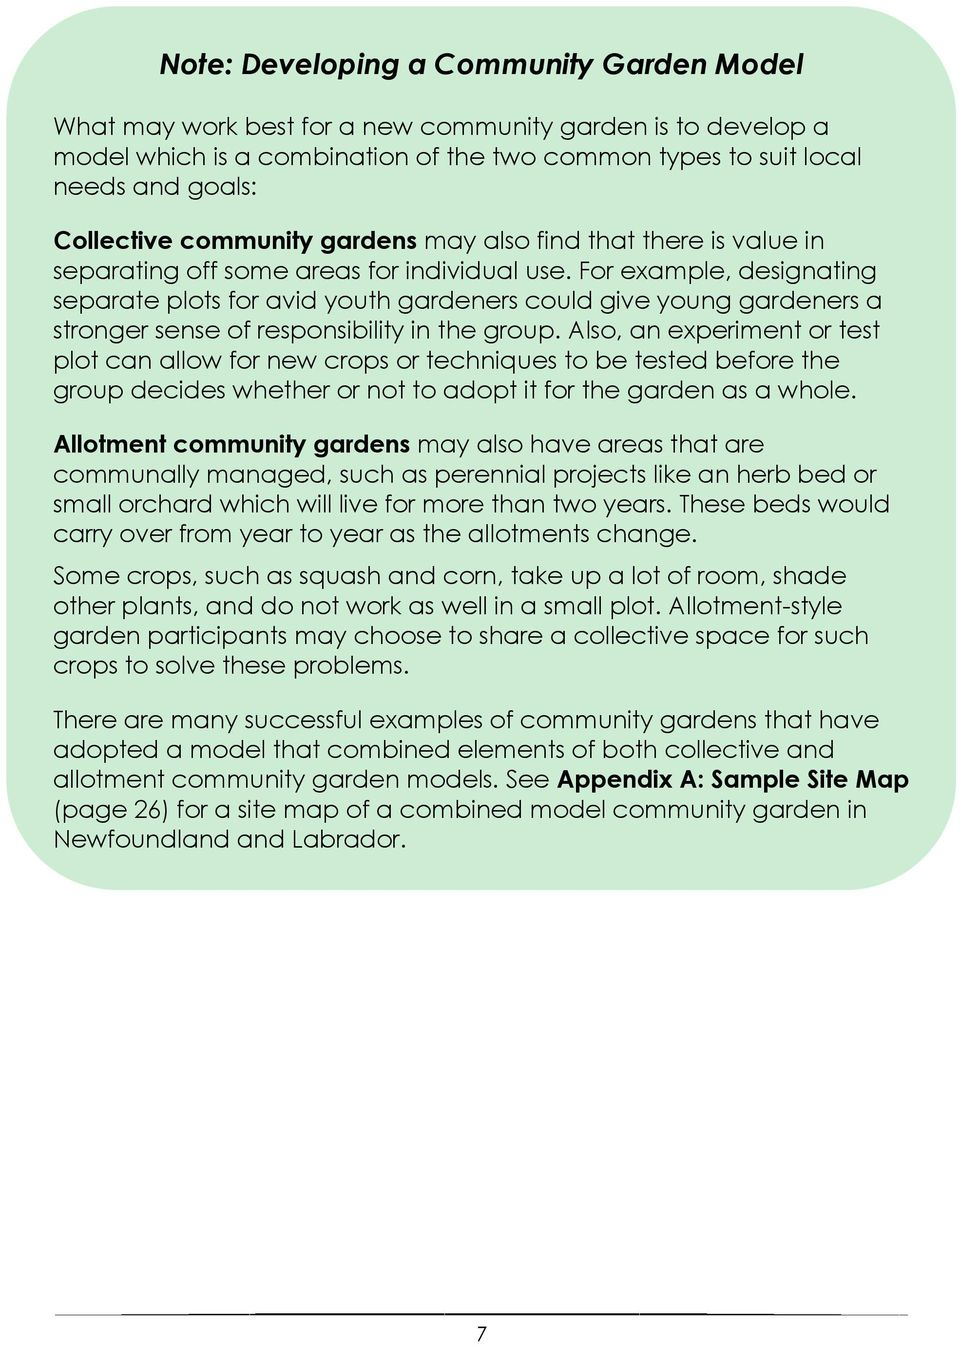 For example, designating separate plots for avid youth gardeners could give young gardeners a stronger sense of responsibility in the group.